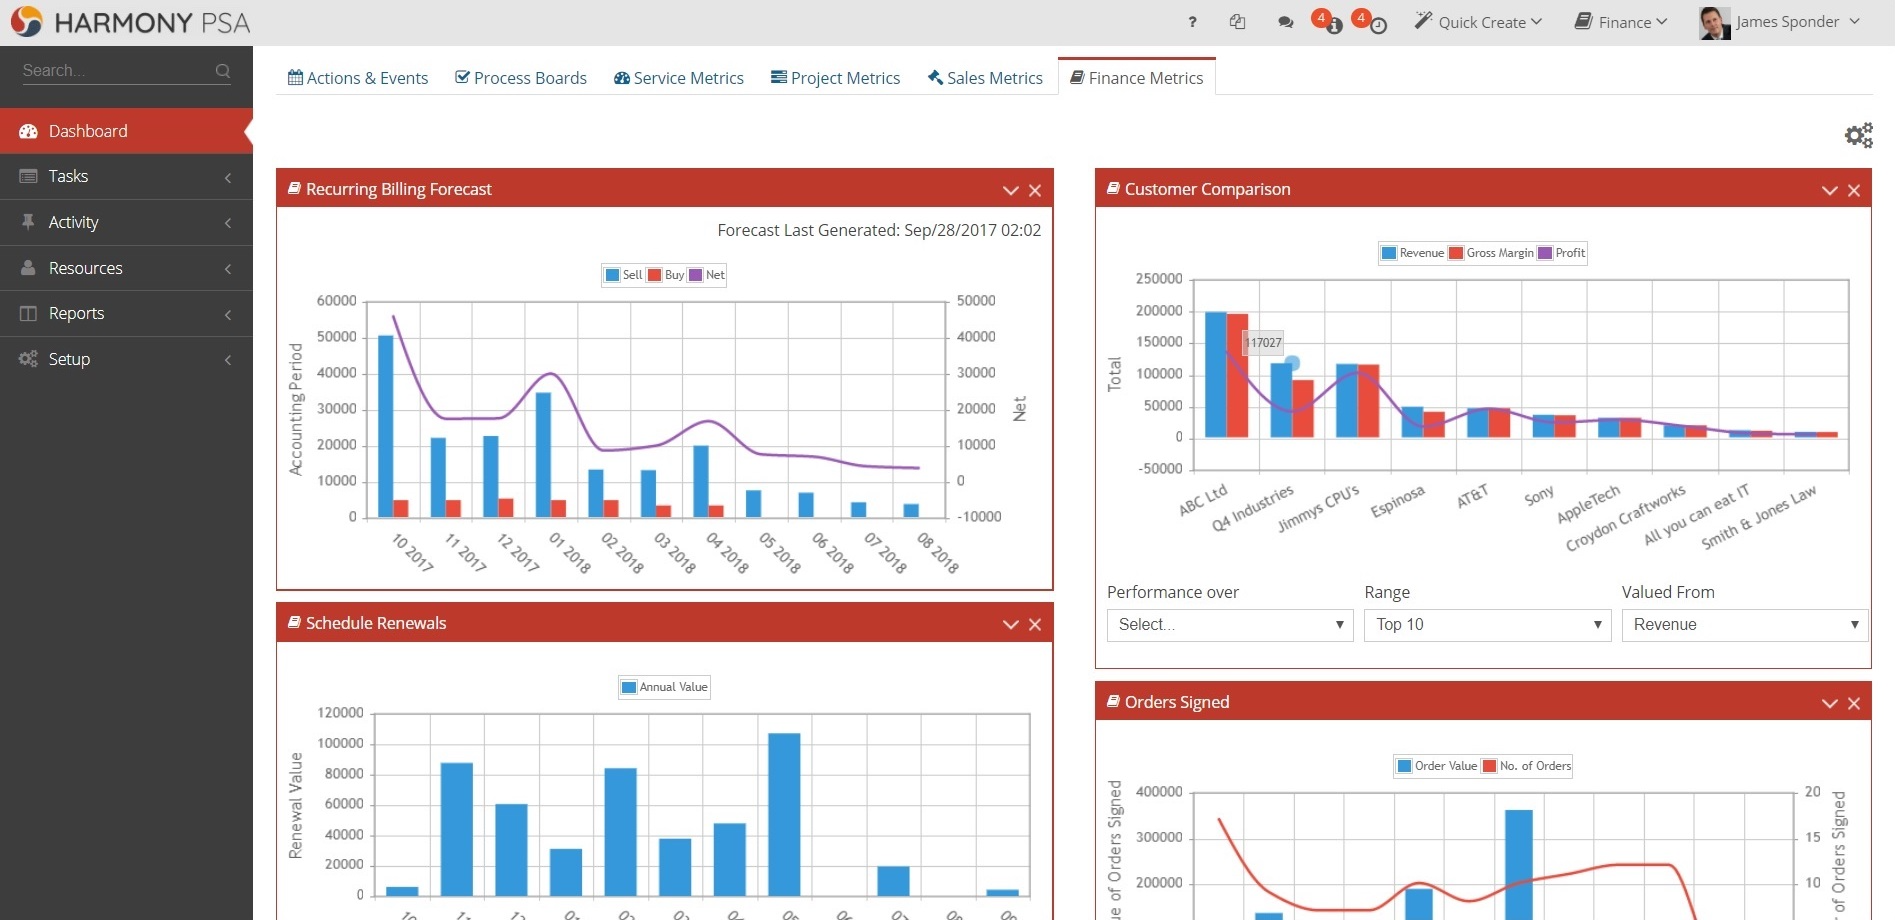 HarmonyPSA Software - Fully configurable Sales, Service and Finance Dashboards give you quick and easy access to the information you need to improve performance